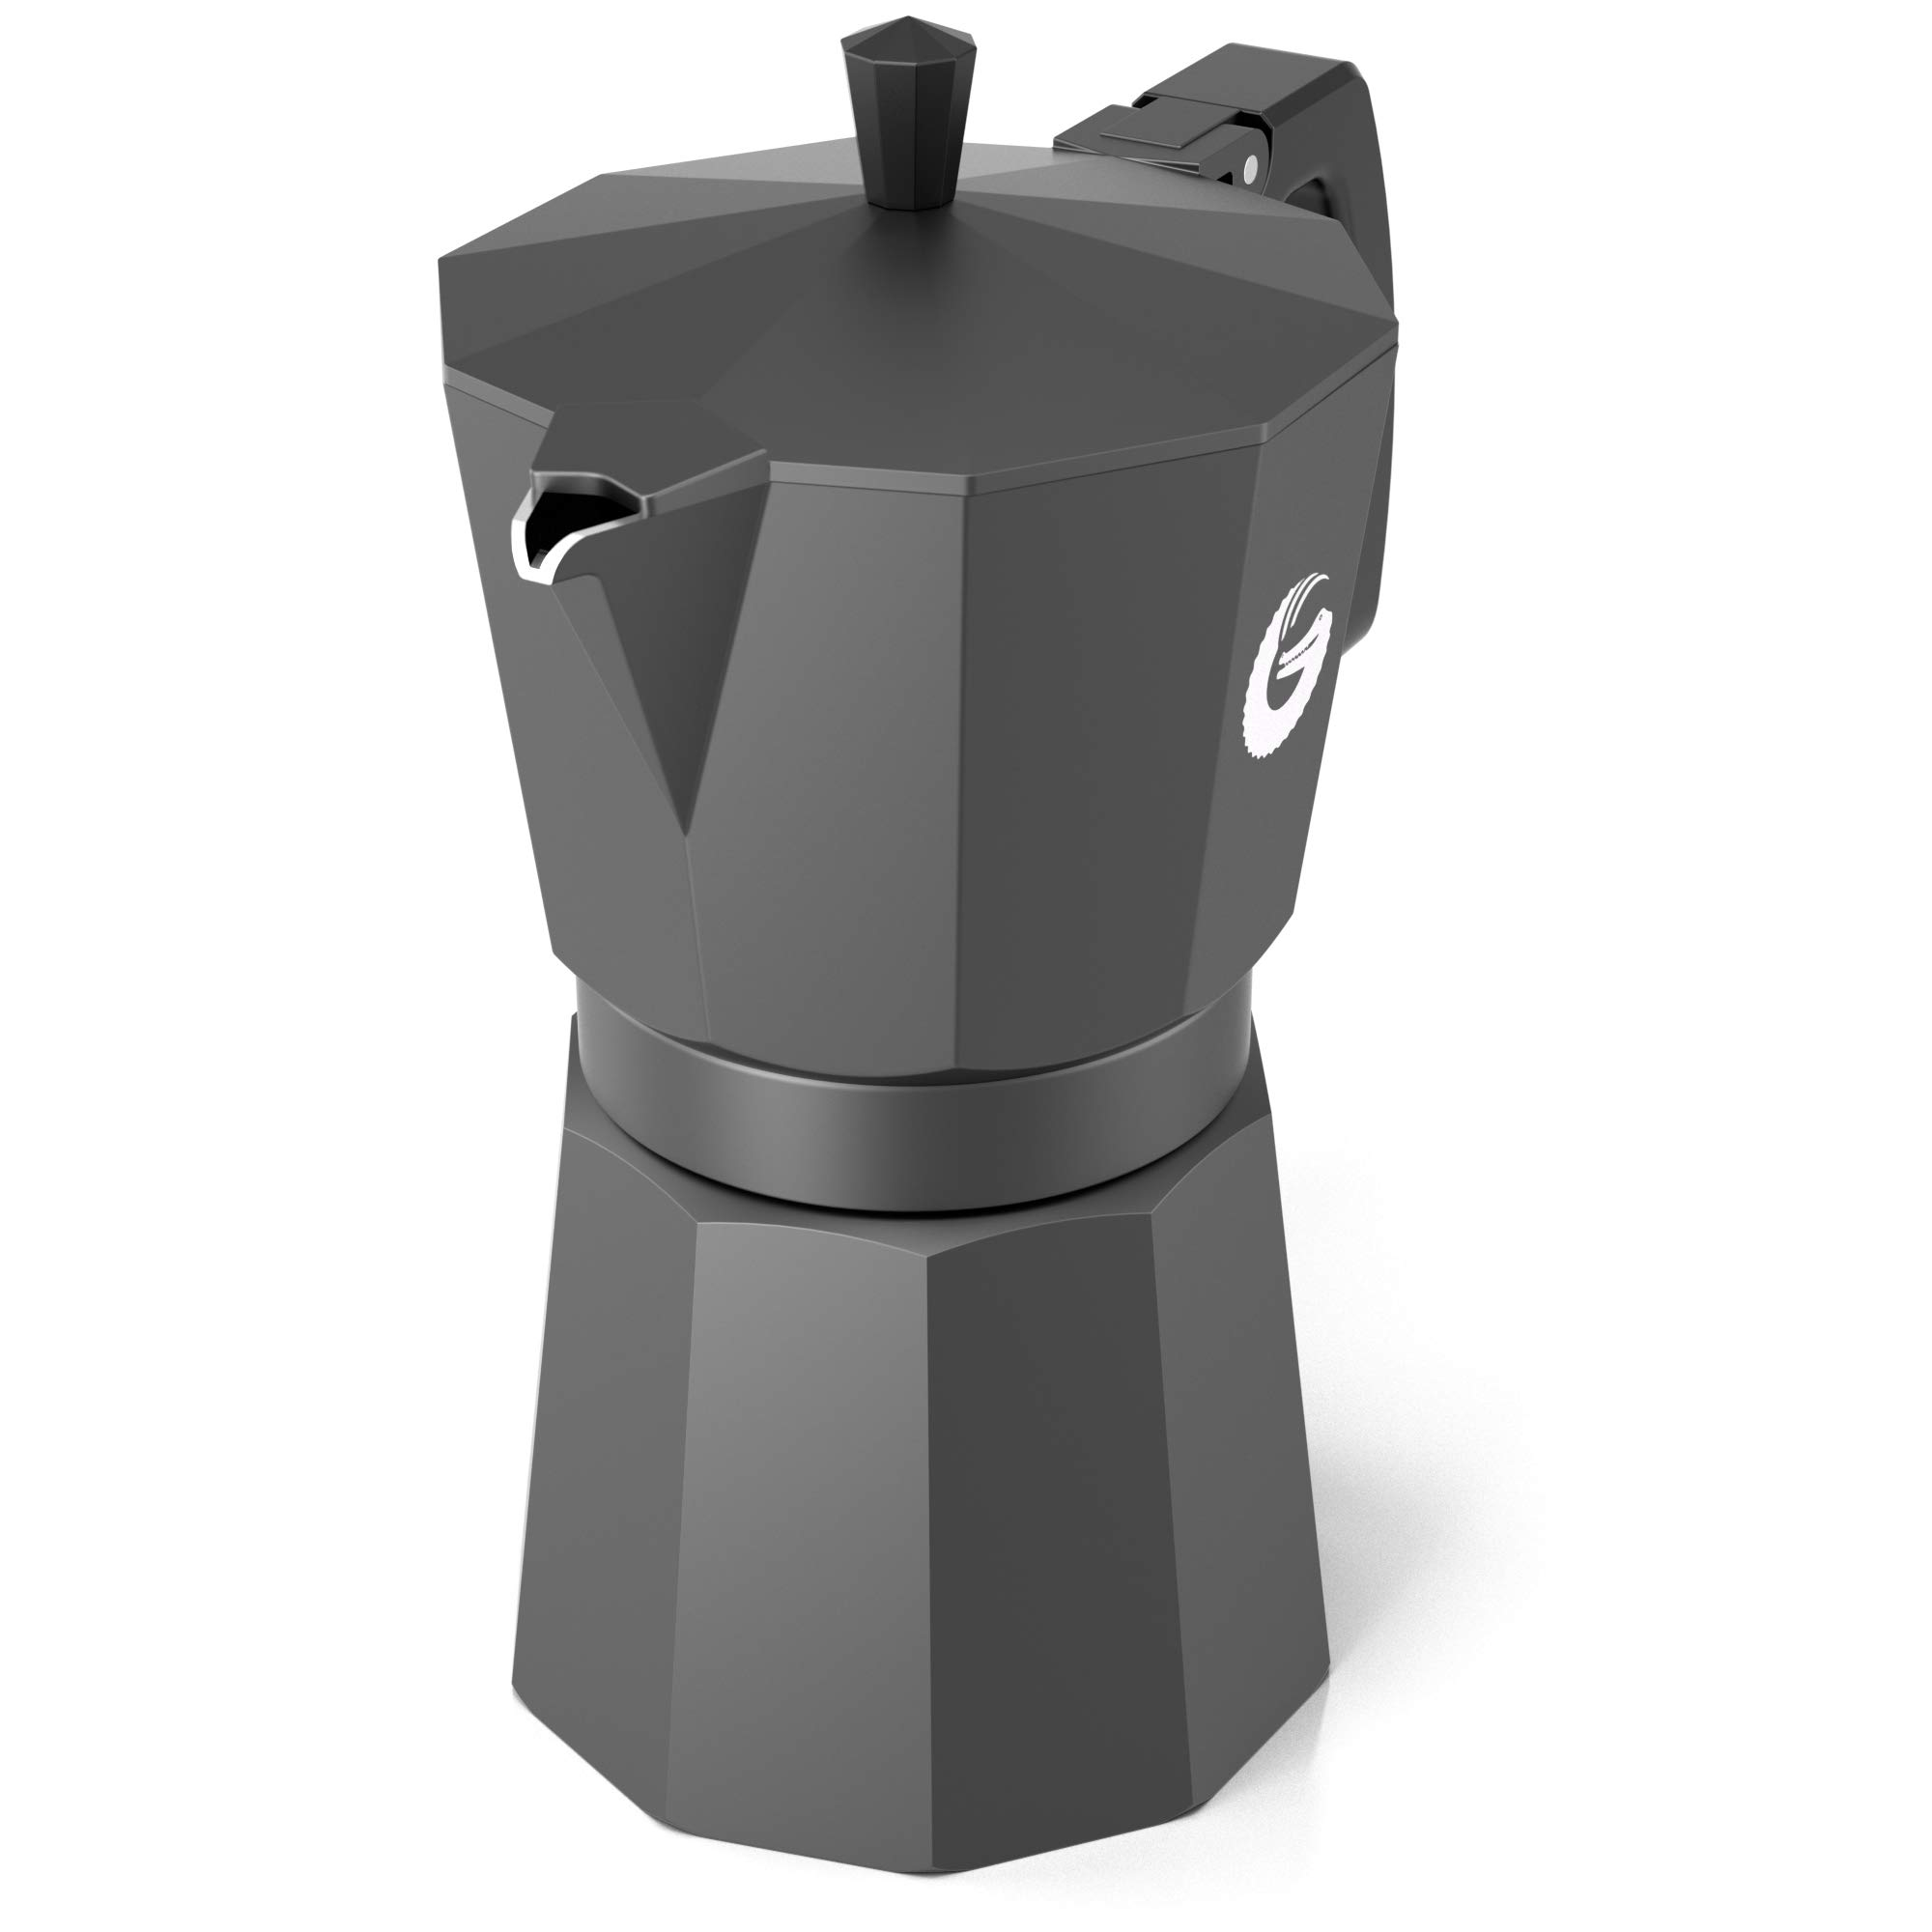 Coffee Gator Espresso Moka Pot - Stovetop Brewer Plus 2 Thermal Cups - 12 Ounce by Coffee Gator (Image #7)